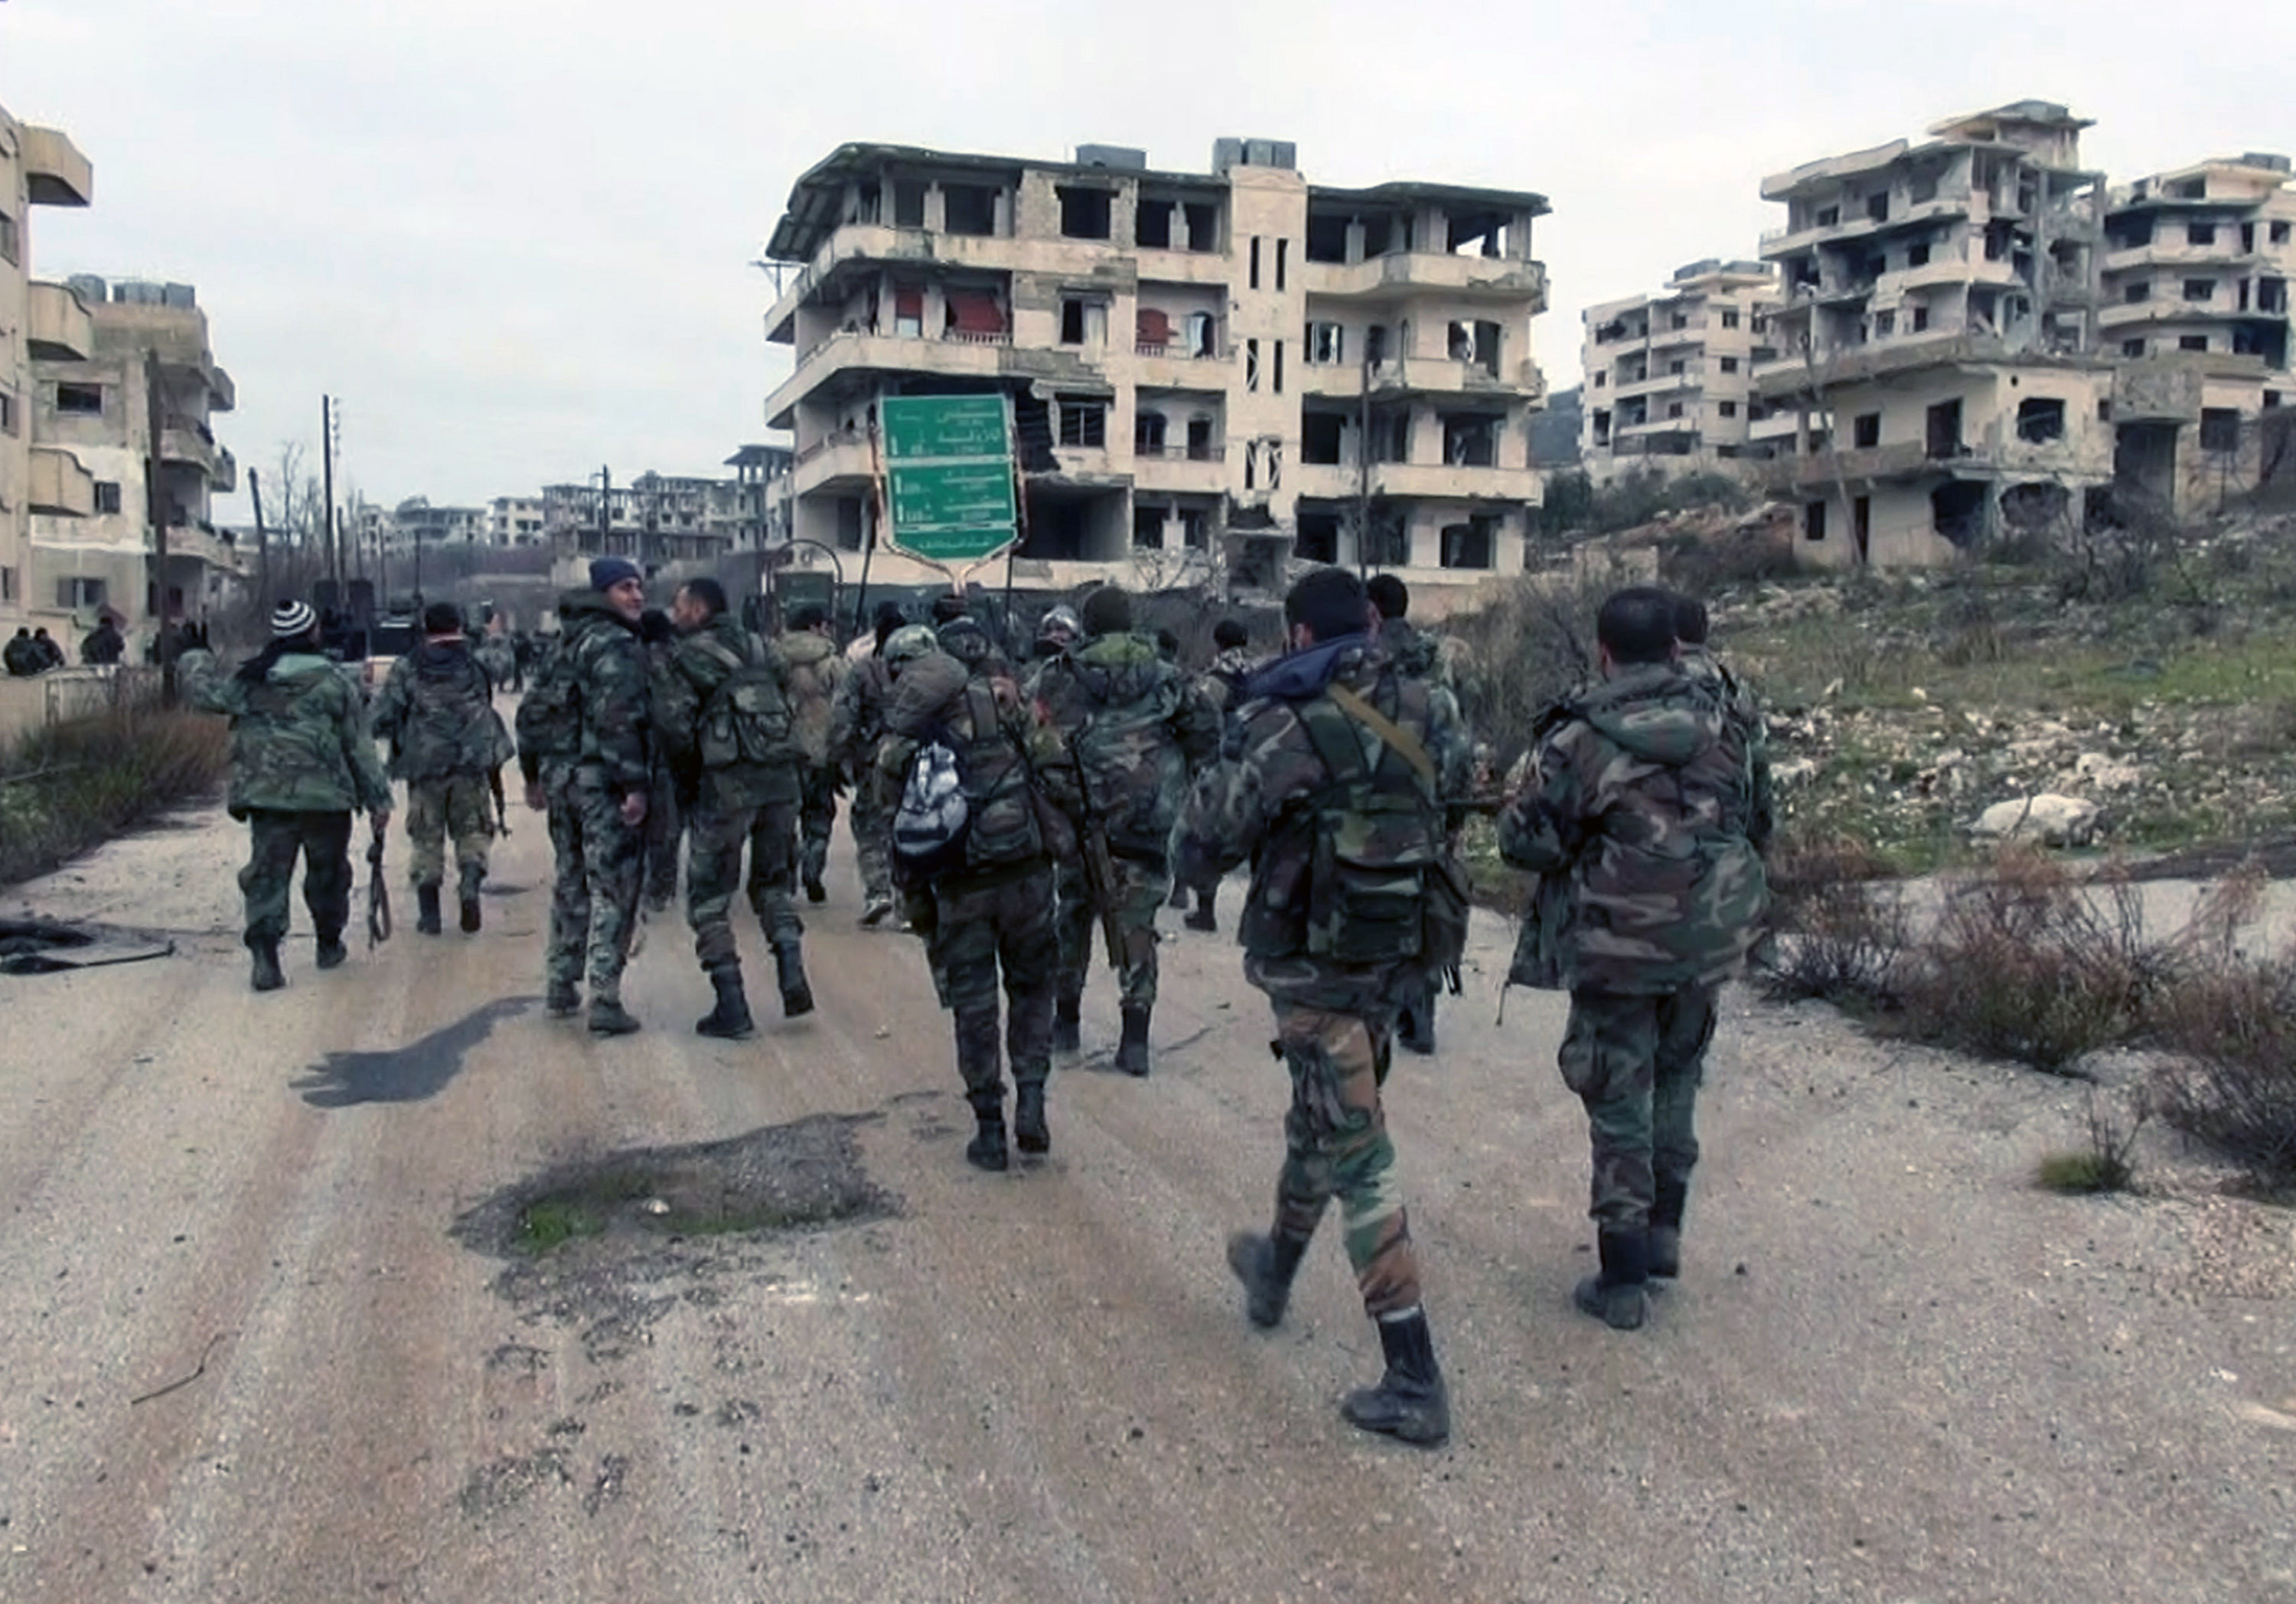 In this photo released on Tuesday, Jan 12, 2016, by the Syrian official news agency SANA, shows Syrian government troops and allied militiamen walk inside the key town of Salma in Latakia province, Syria